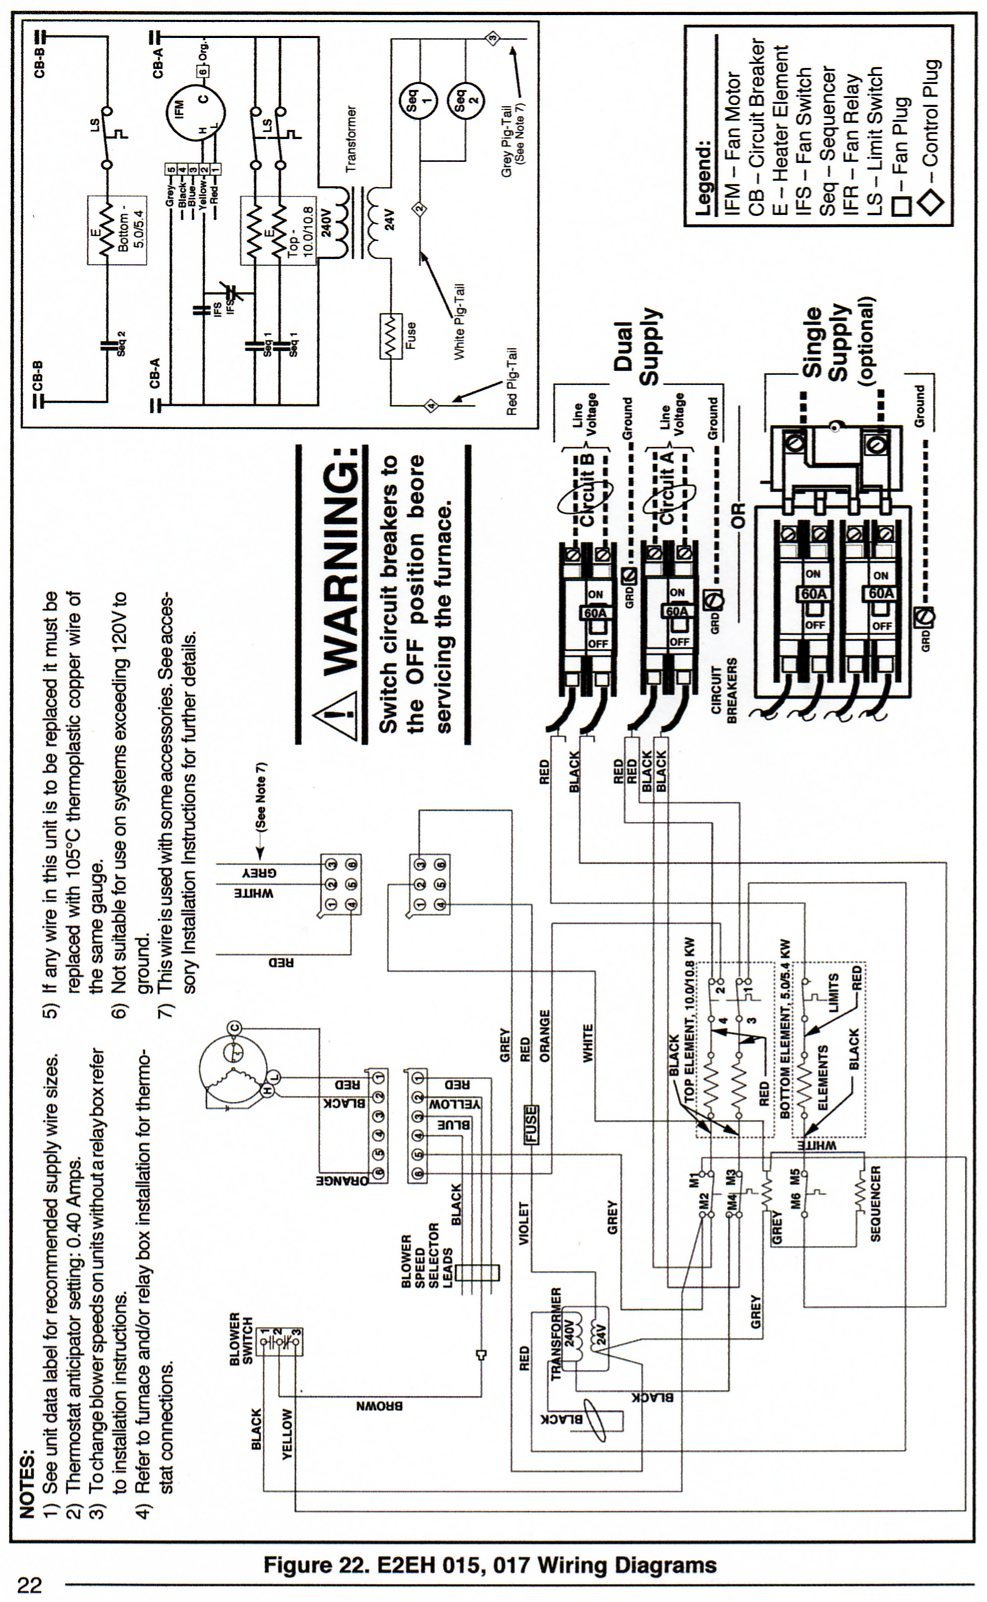 Nordyne Ecm Wiring Diagram on air conditioner wiring diagram, intertherm e2eb 015ha wiring-diagram, electric furnace wiring diagram, how a coffee maker works diagram, coleman furnace wiring diagram, furnace blower wiring diagram, whirlpool furnace wiring diagram, climatrol furnace wiring diagram, alpine furnace wiring diagram, blower motor wiring diagram, hydrotherm furnace wiring diagram, basic furnace wiring diagram, thermostat wiring diagram, intertherm parts diagram, janitrol furnace wiring diagram, gas furnace wiring diagram, furnace transformer wiring diagram, tappan furnace wiring diagram, comfort maker furnace wiring diagram, intertherm sequencer wiring-diagram,